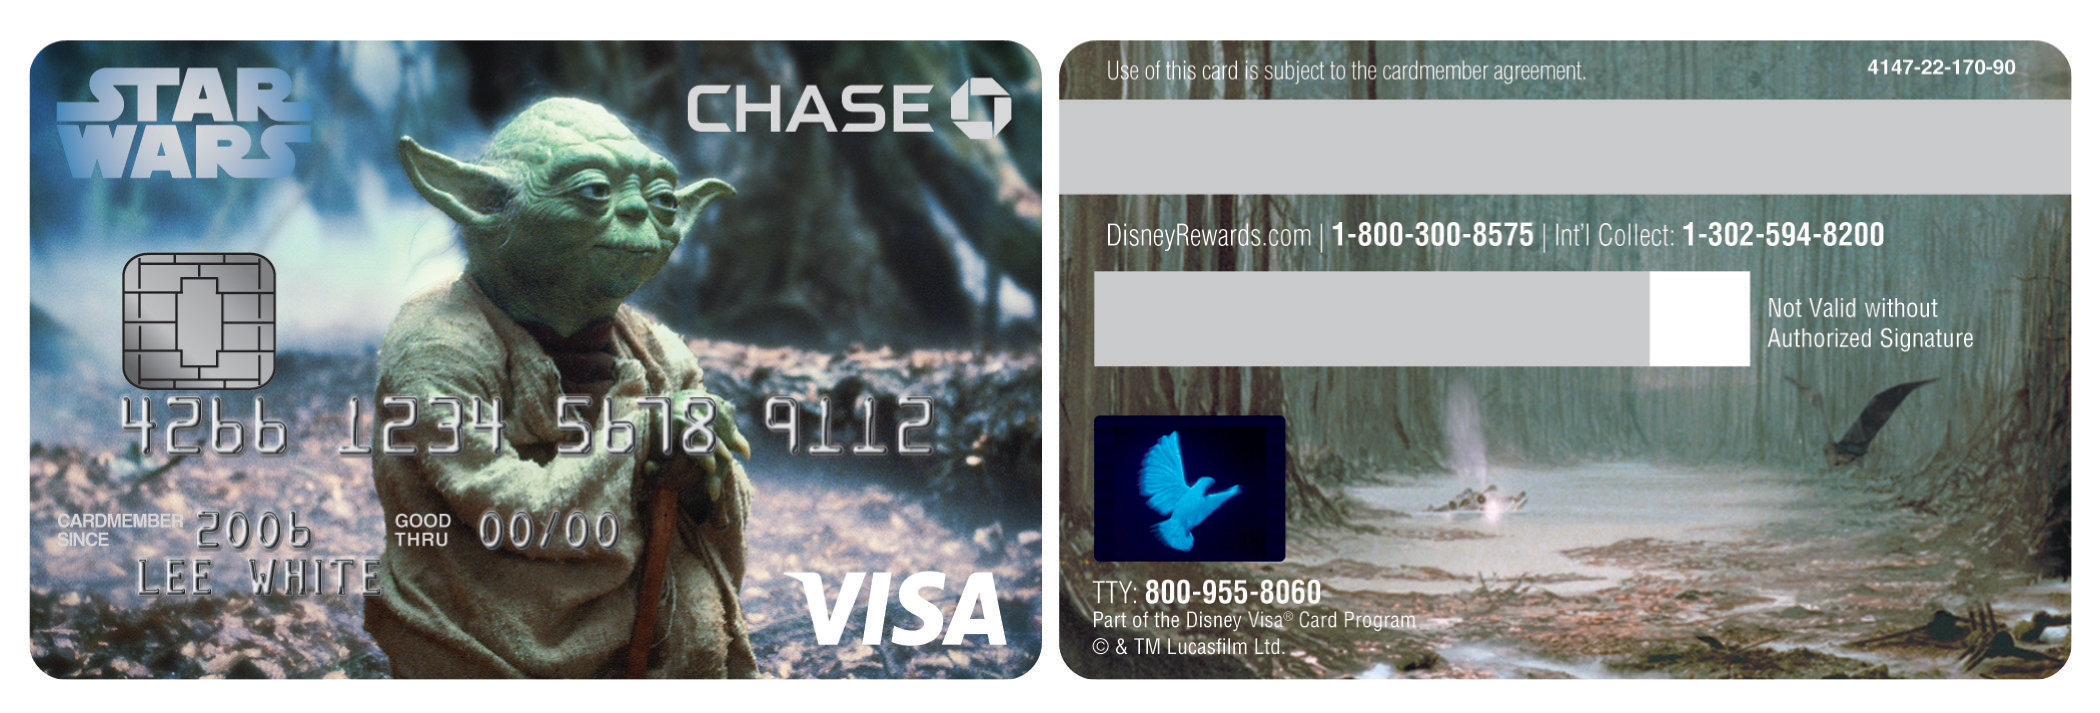 Adding multimedia star warstm comes to chase disney visa credit adding multimedia star warstm comes to chase disney visa credit cards business wire kristyandbryce Choice Image